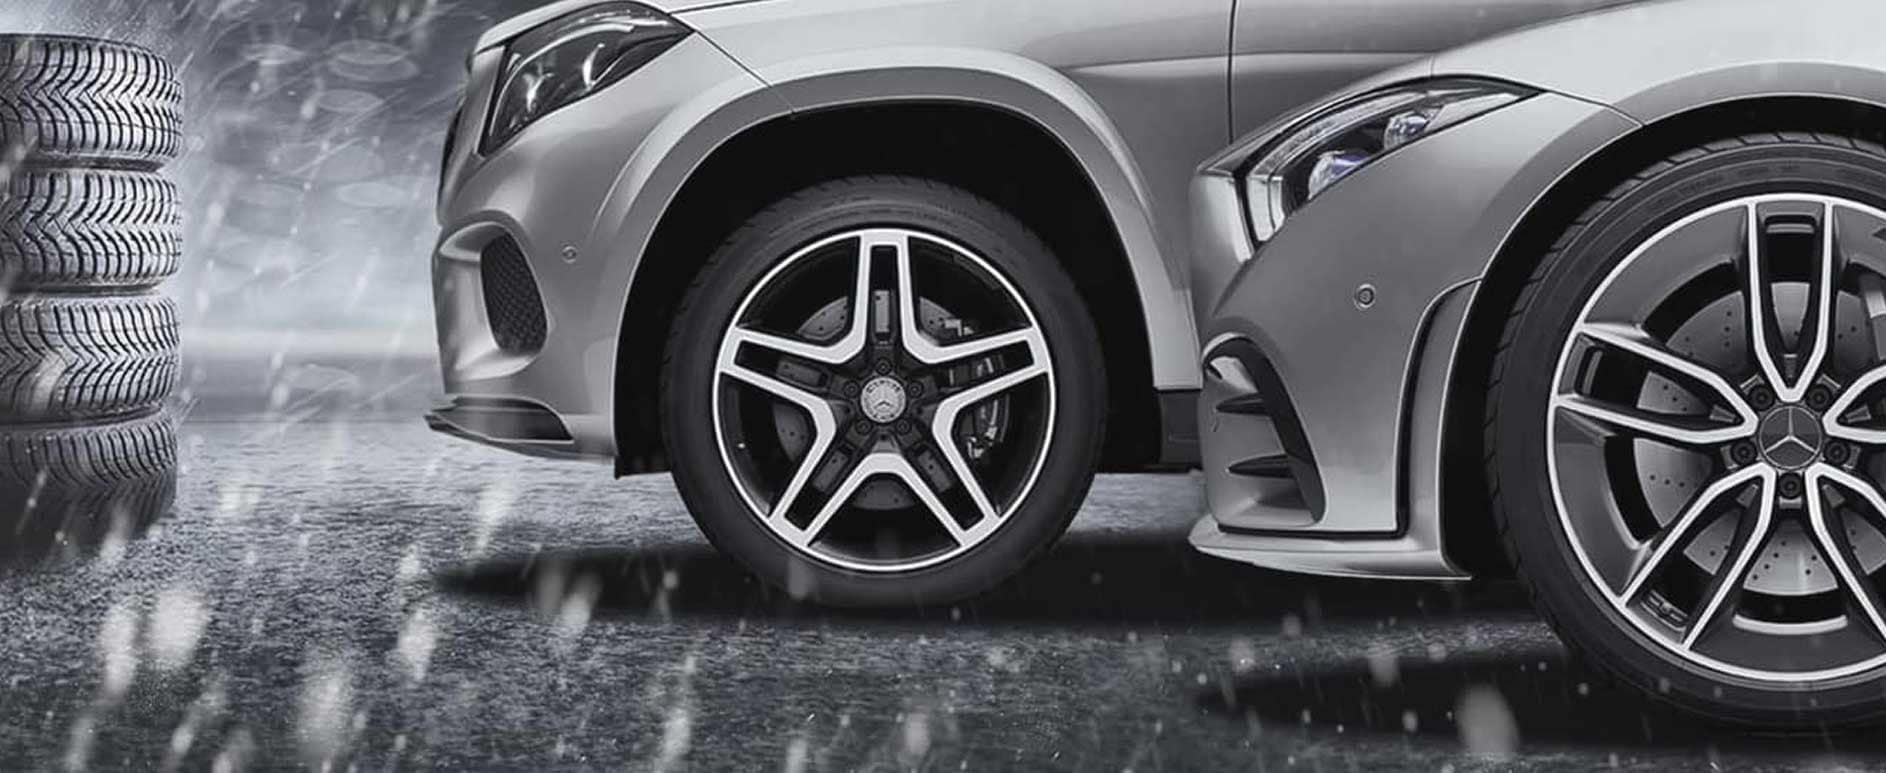 Mercedes-Benz Winter Tire and Wheels Sets